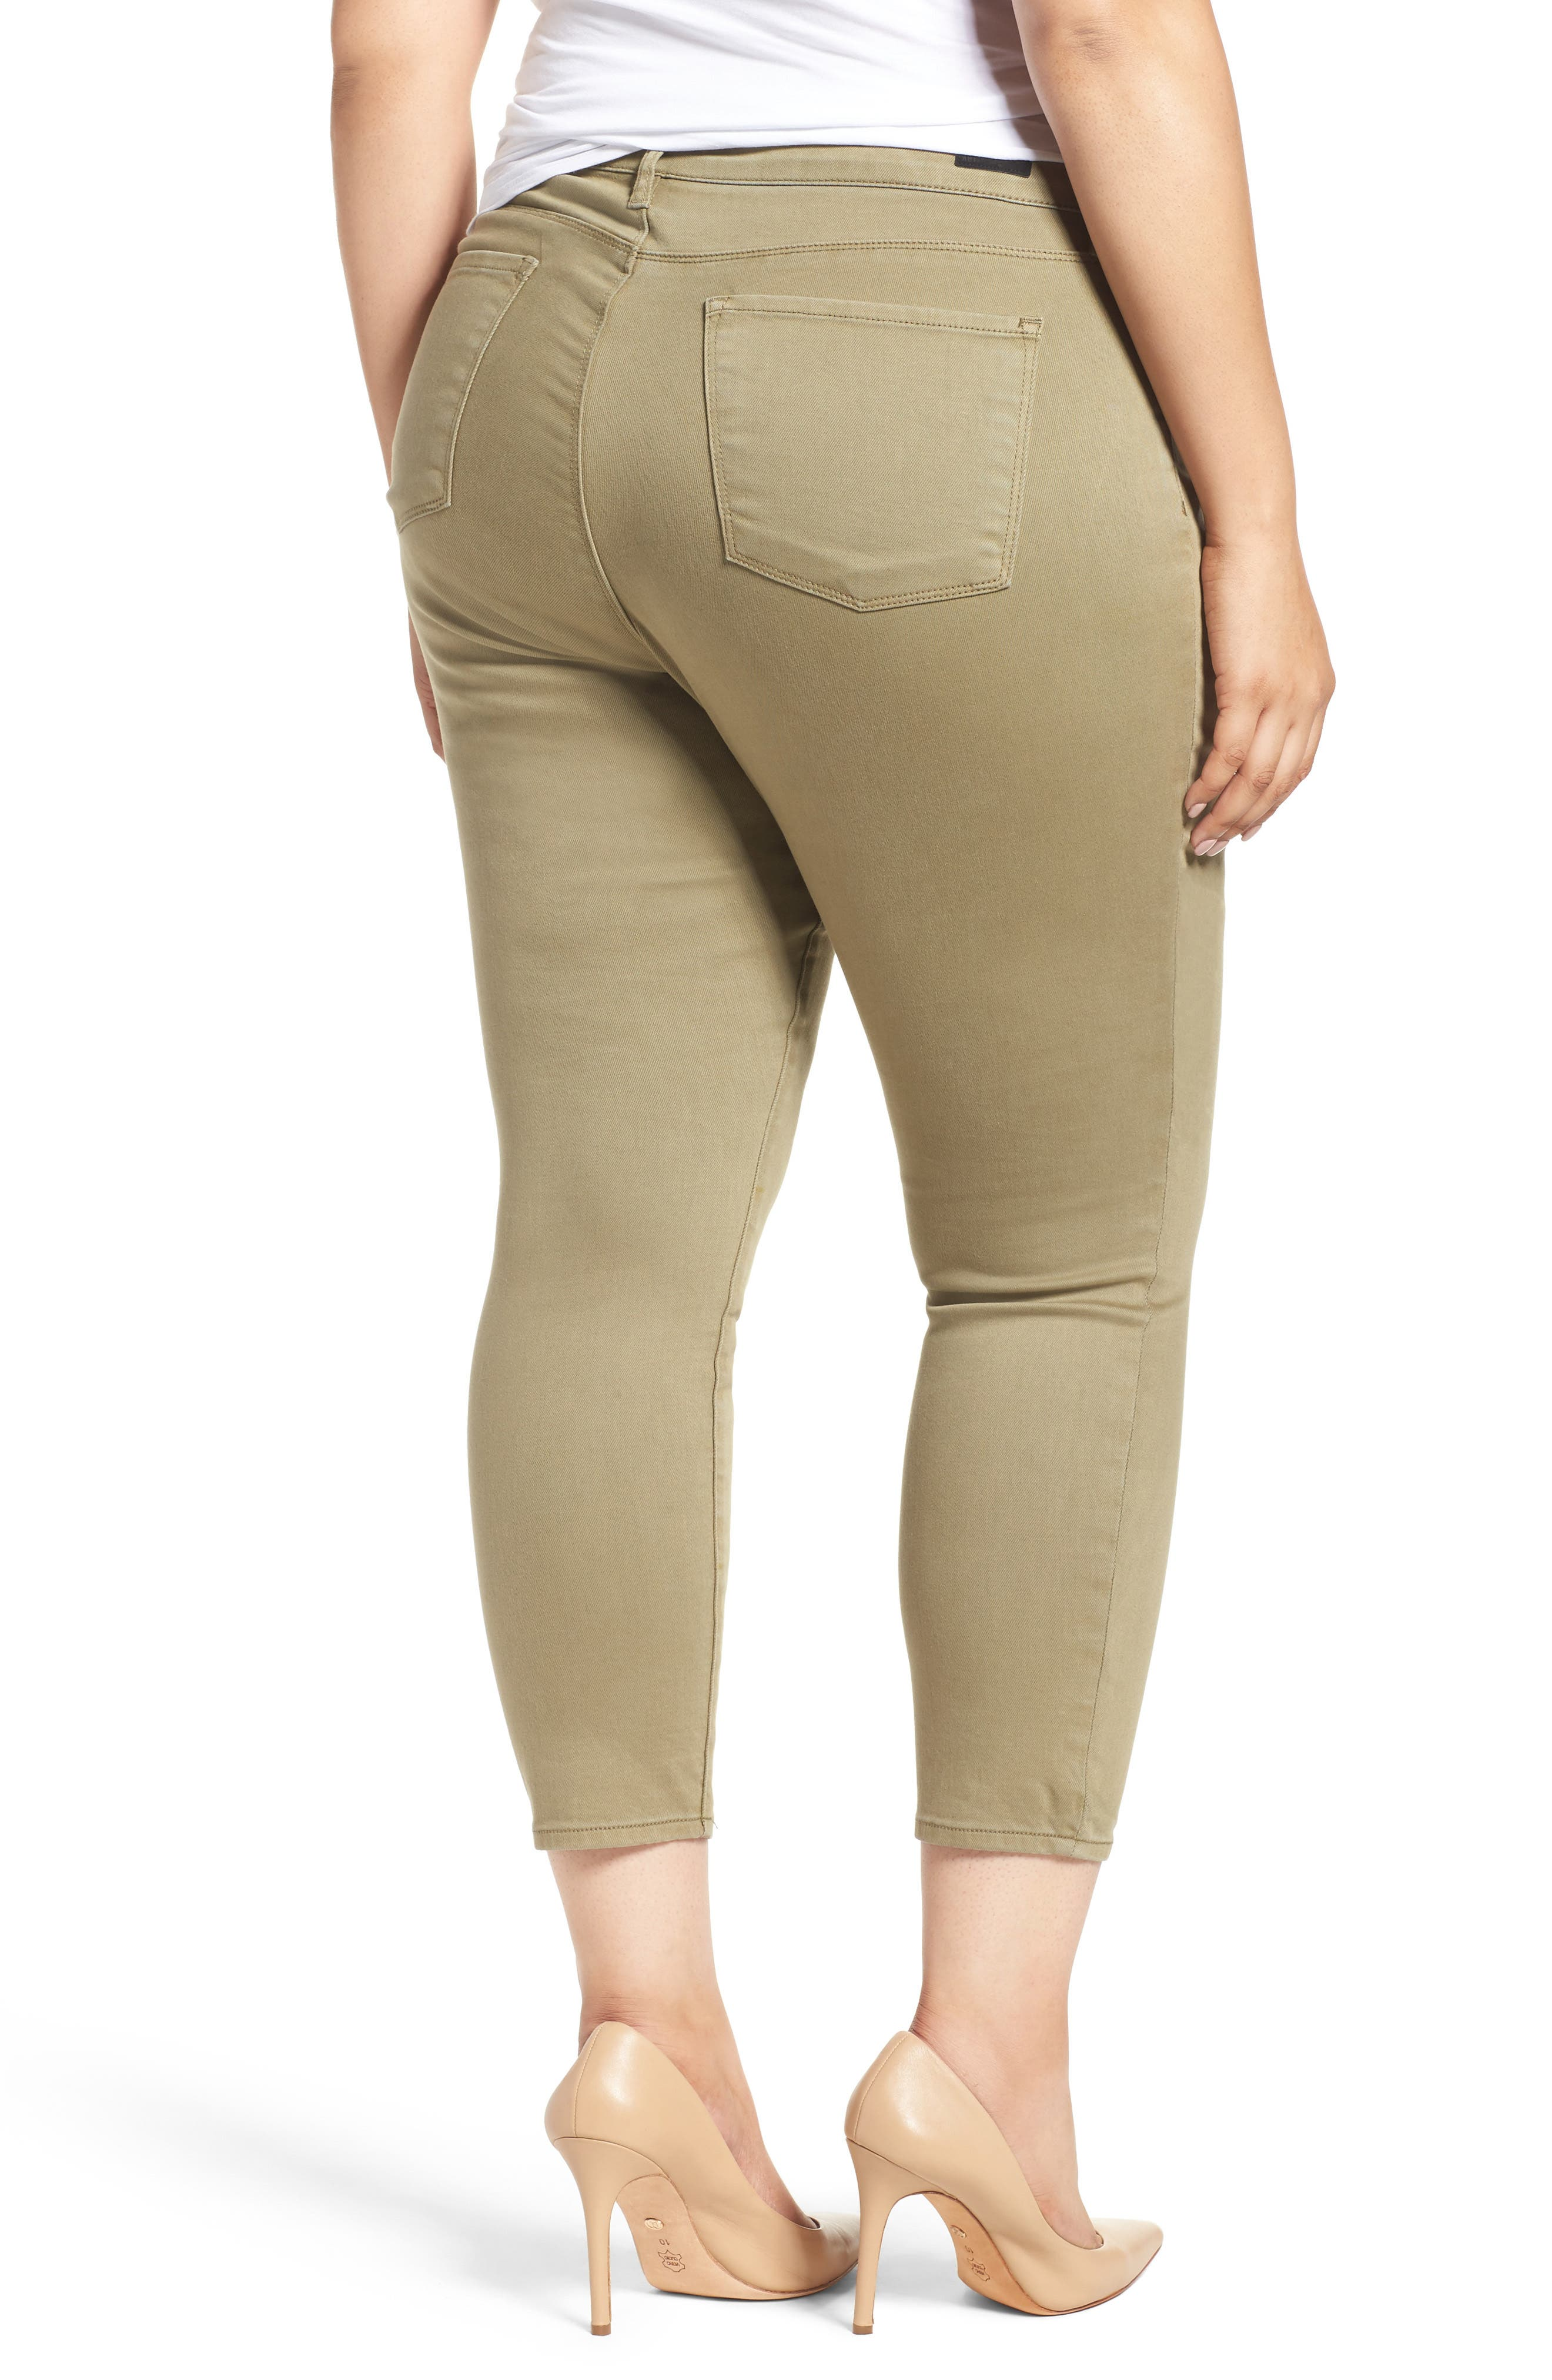 Reese Stretch Ankle Skinny Pants,                             Alternate thumbnail 2, color,                             OLIVE